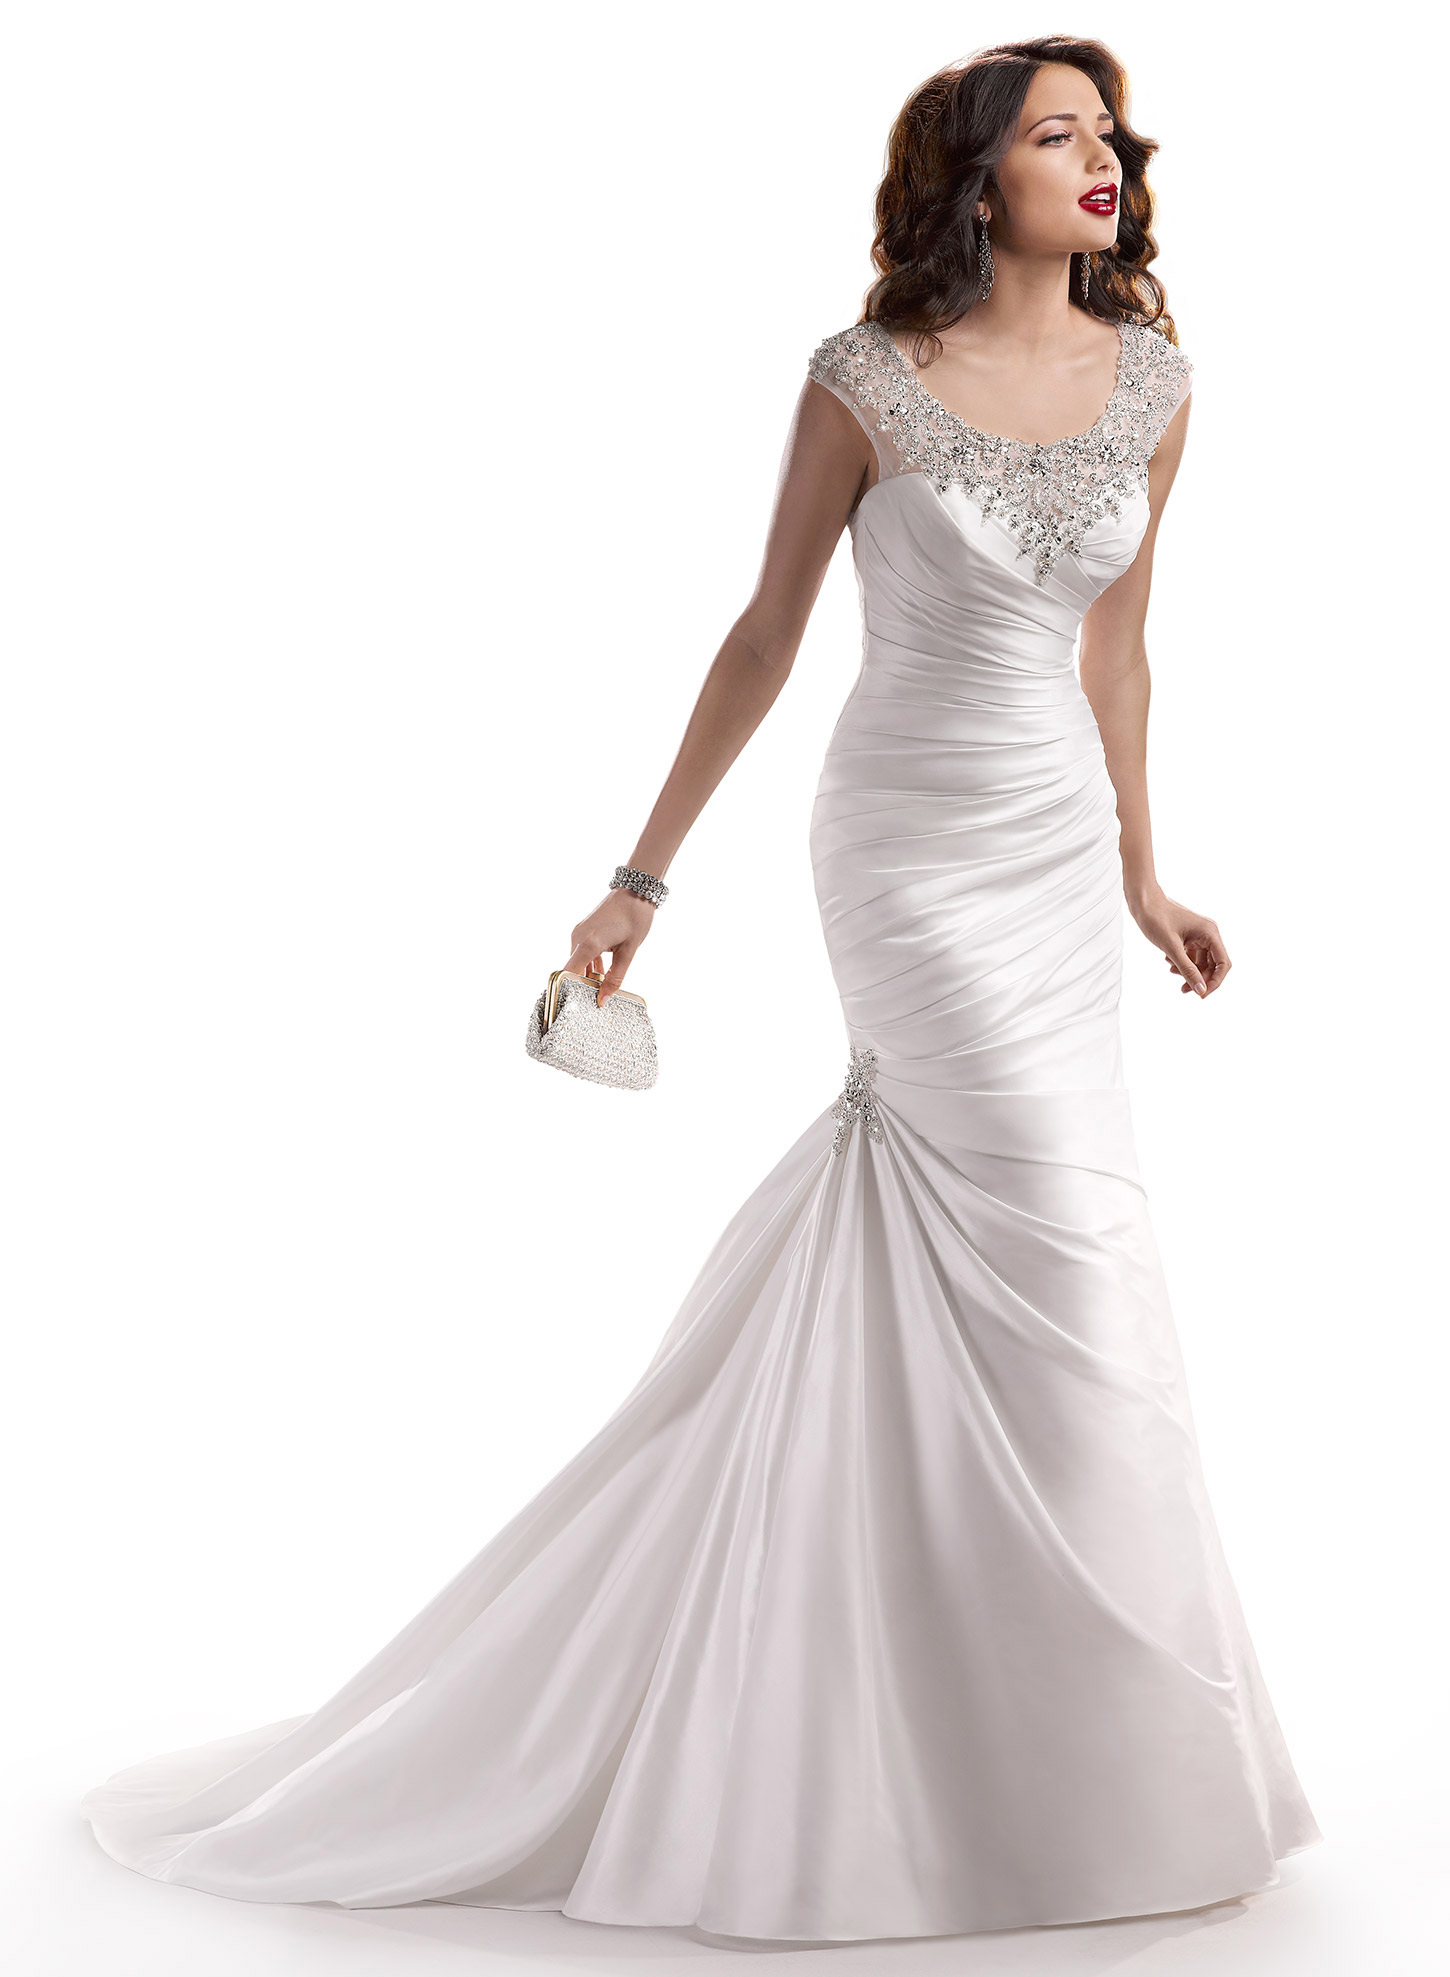 Maggie sottero landyn wedding dress for sale the knot for Maggie sottero wedding dress sale